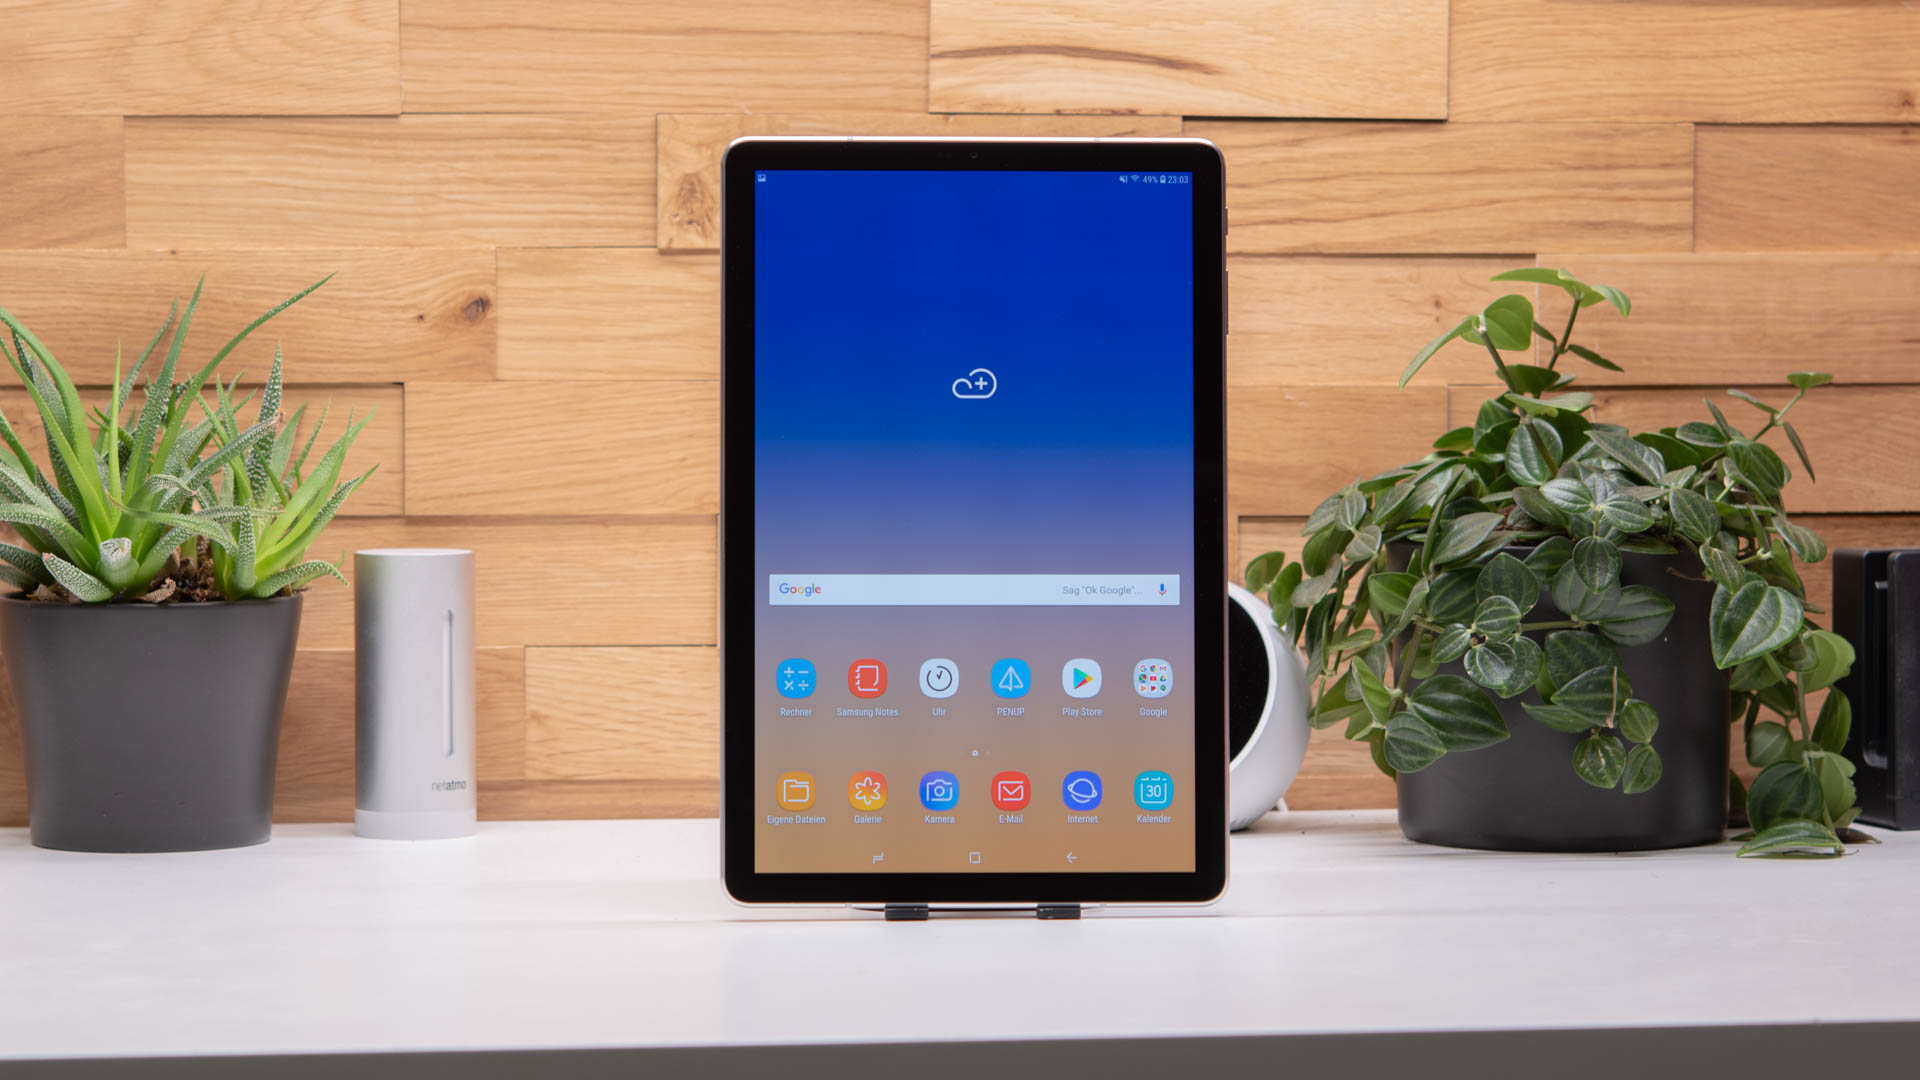 das samsung galaxy tab s4 im test das beste android. Black Bedroom Furniture Sets. Home Design Ideas